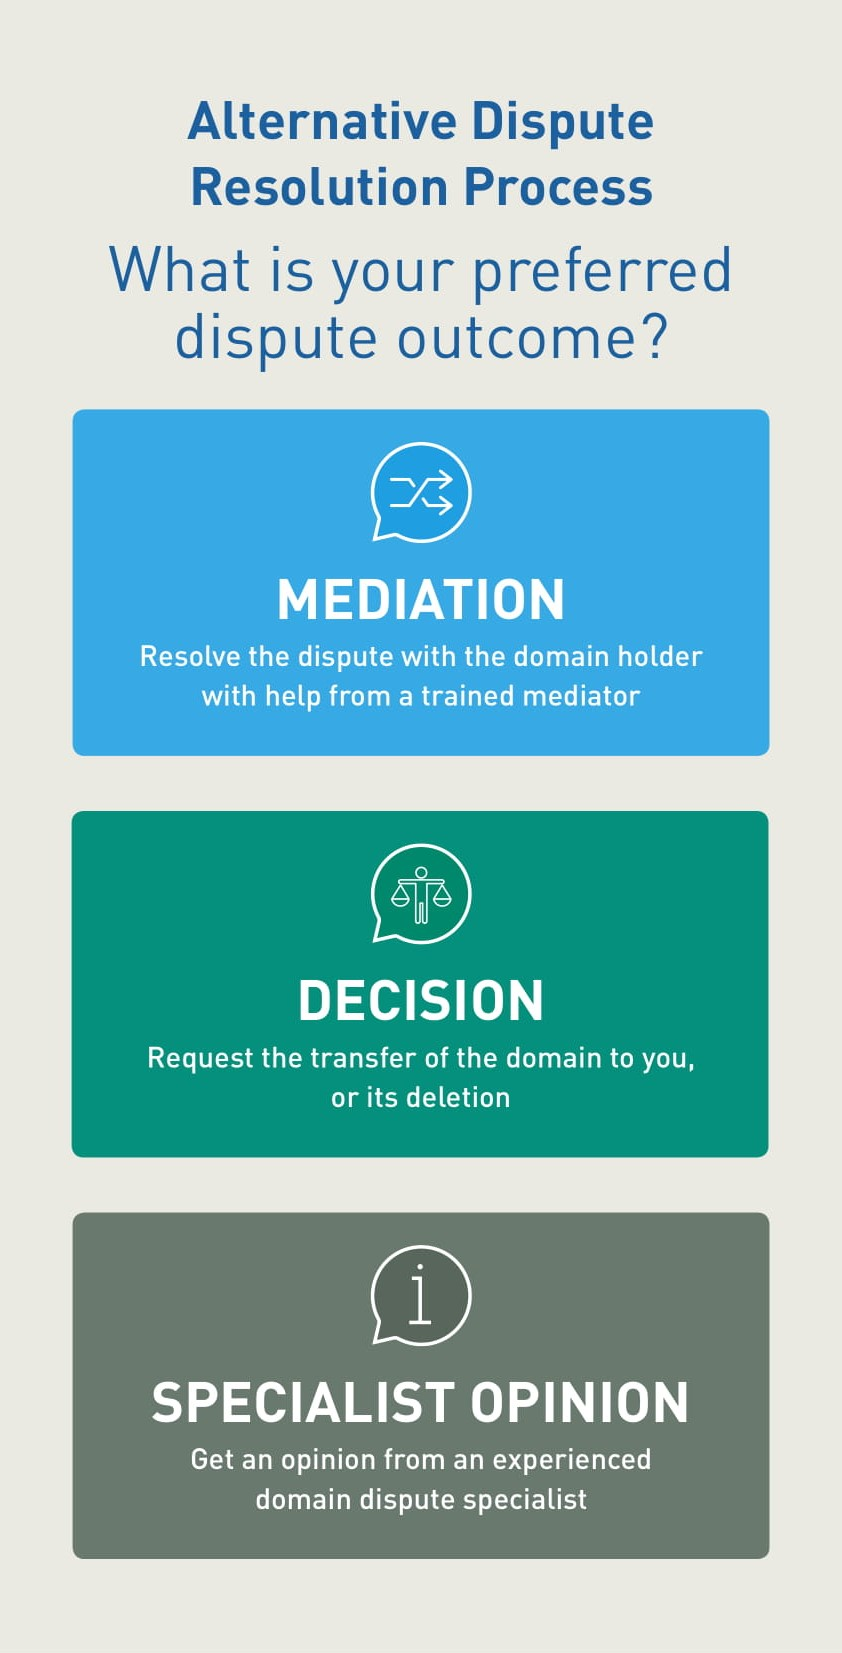 Alternative Dispute Resolution Process Graphic: Mediation, Decision and Specialist Opinion